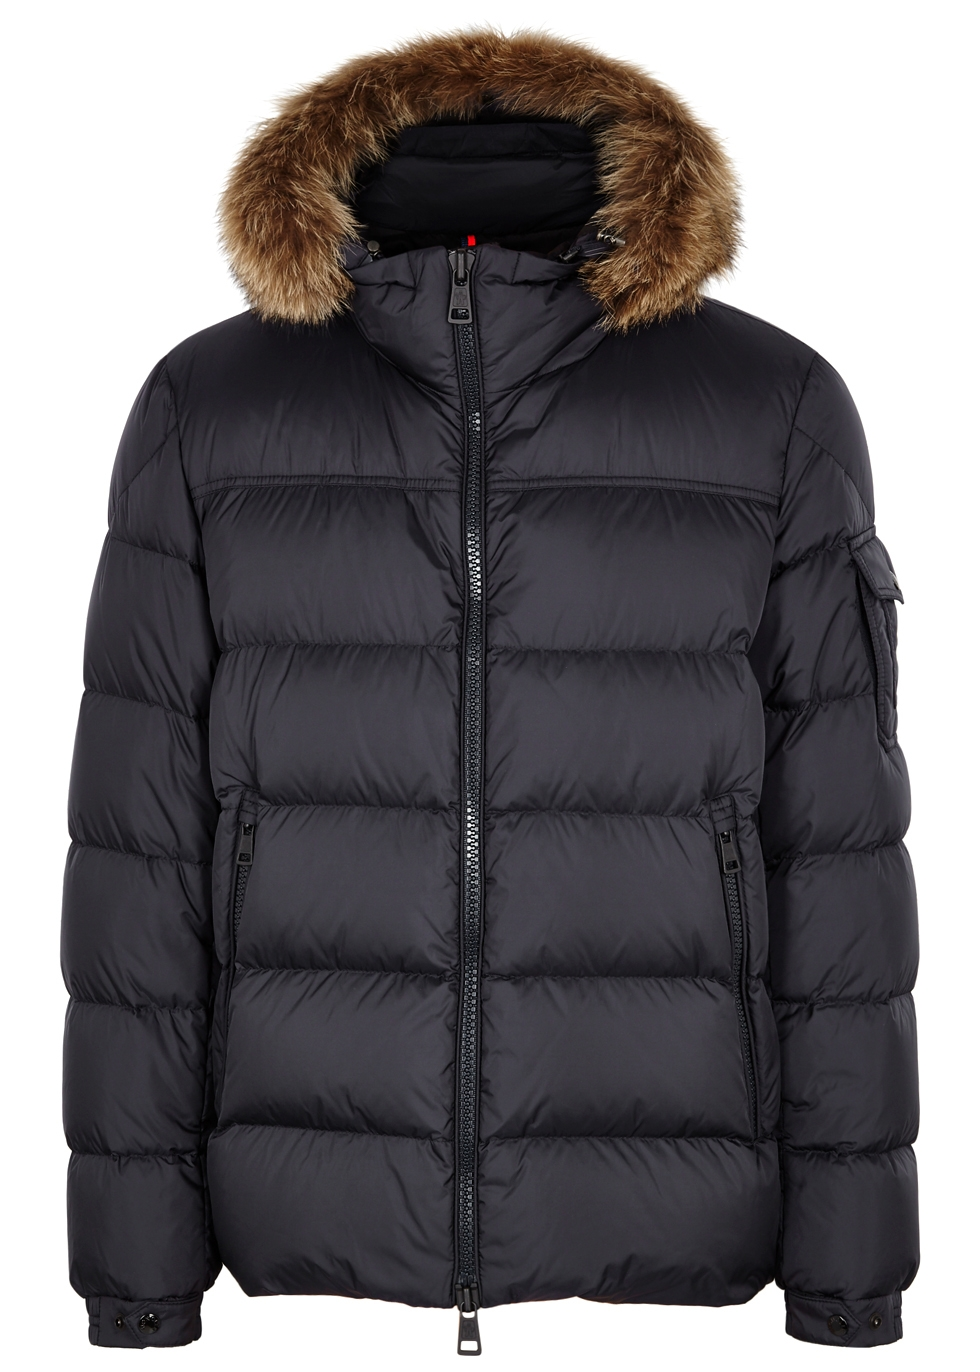 Marque fur-trimmed shell jacket - Moncler